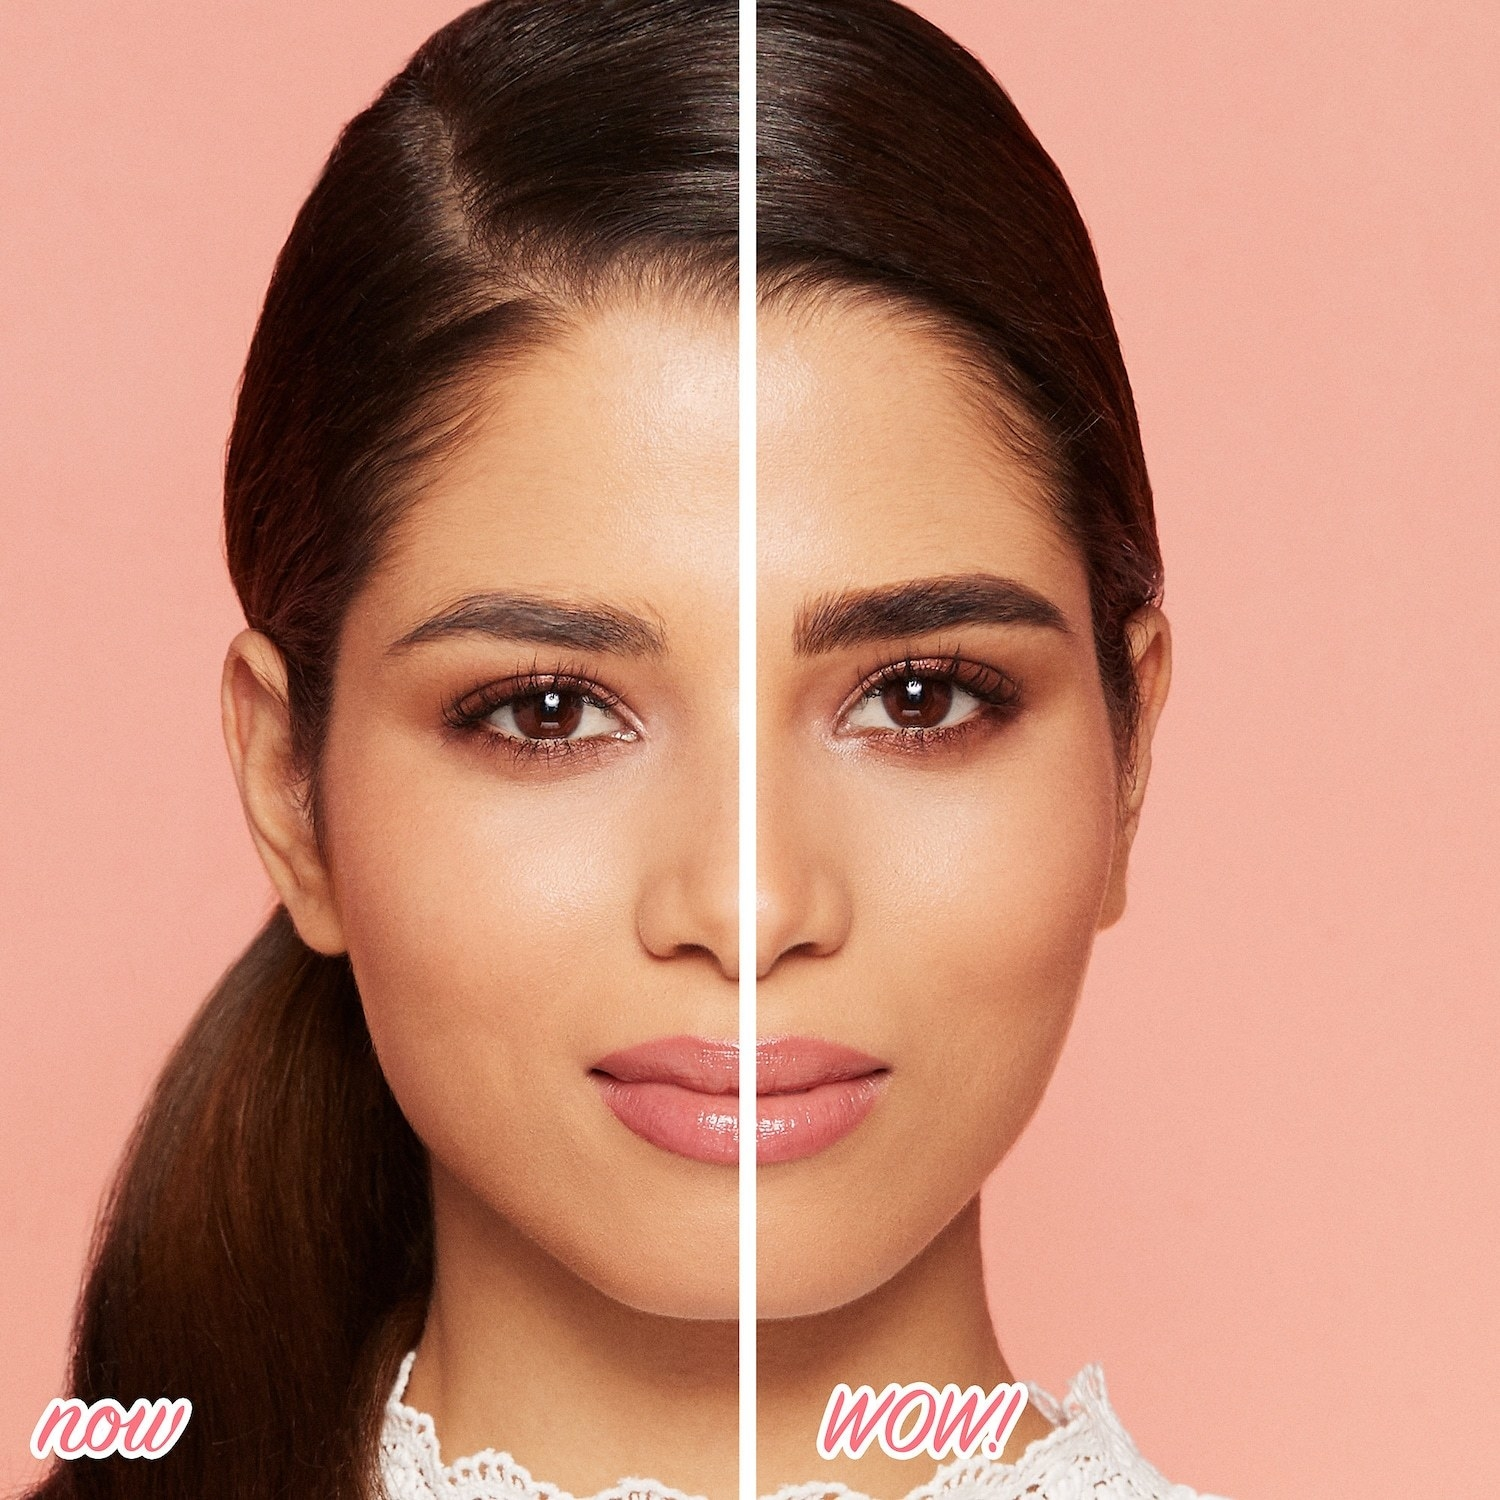 Model showing before and after of brows with the product, with the product-less brow light and wispy and the brow with the product thick and dark